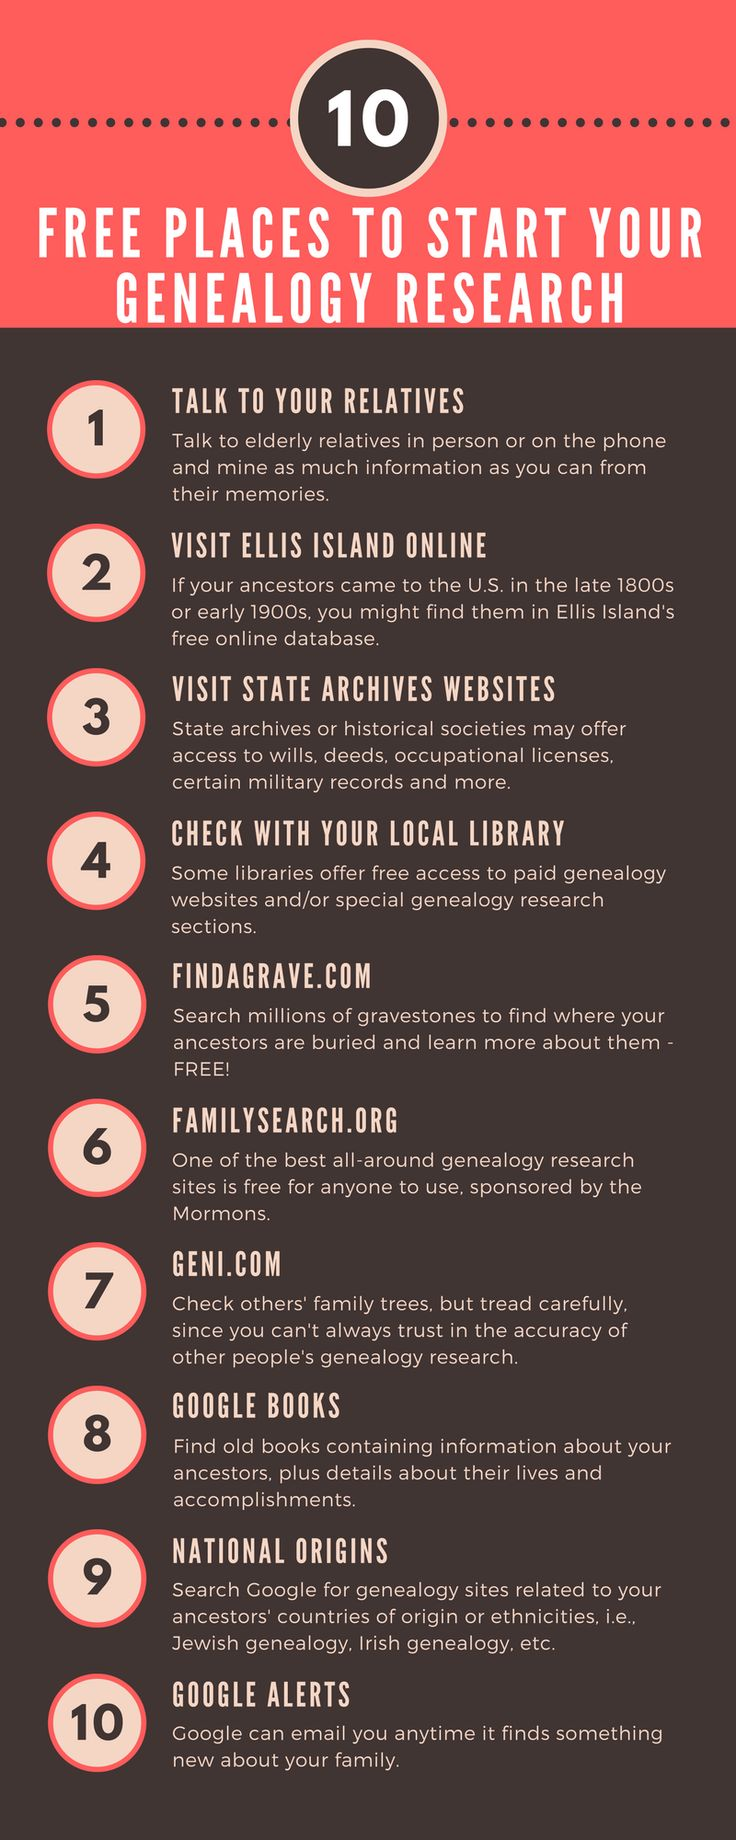 Baltimore county maryland genealogy learn familysearch org - 10 Free Places To Start Your Genealogy Research Infographic